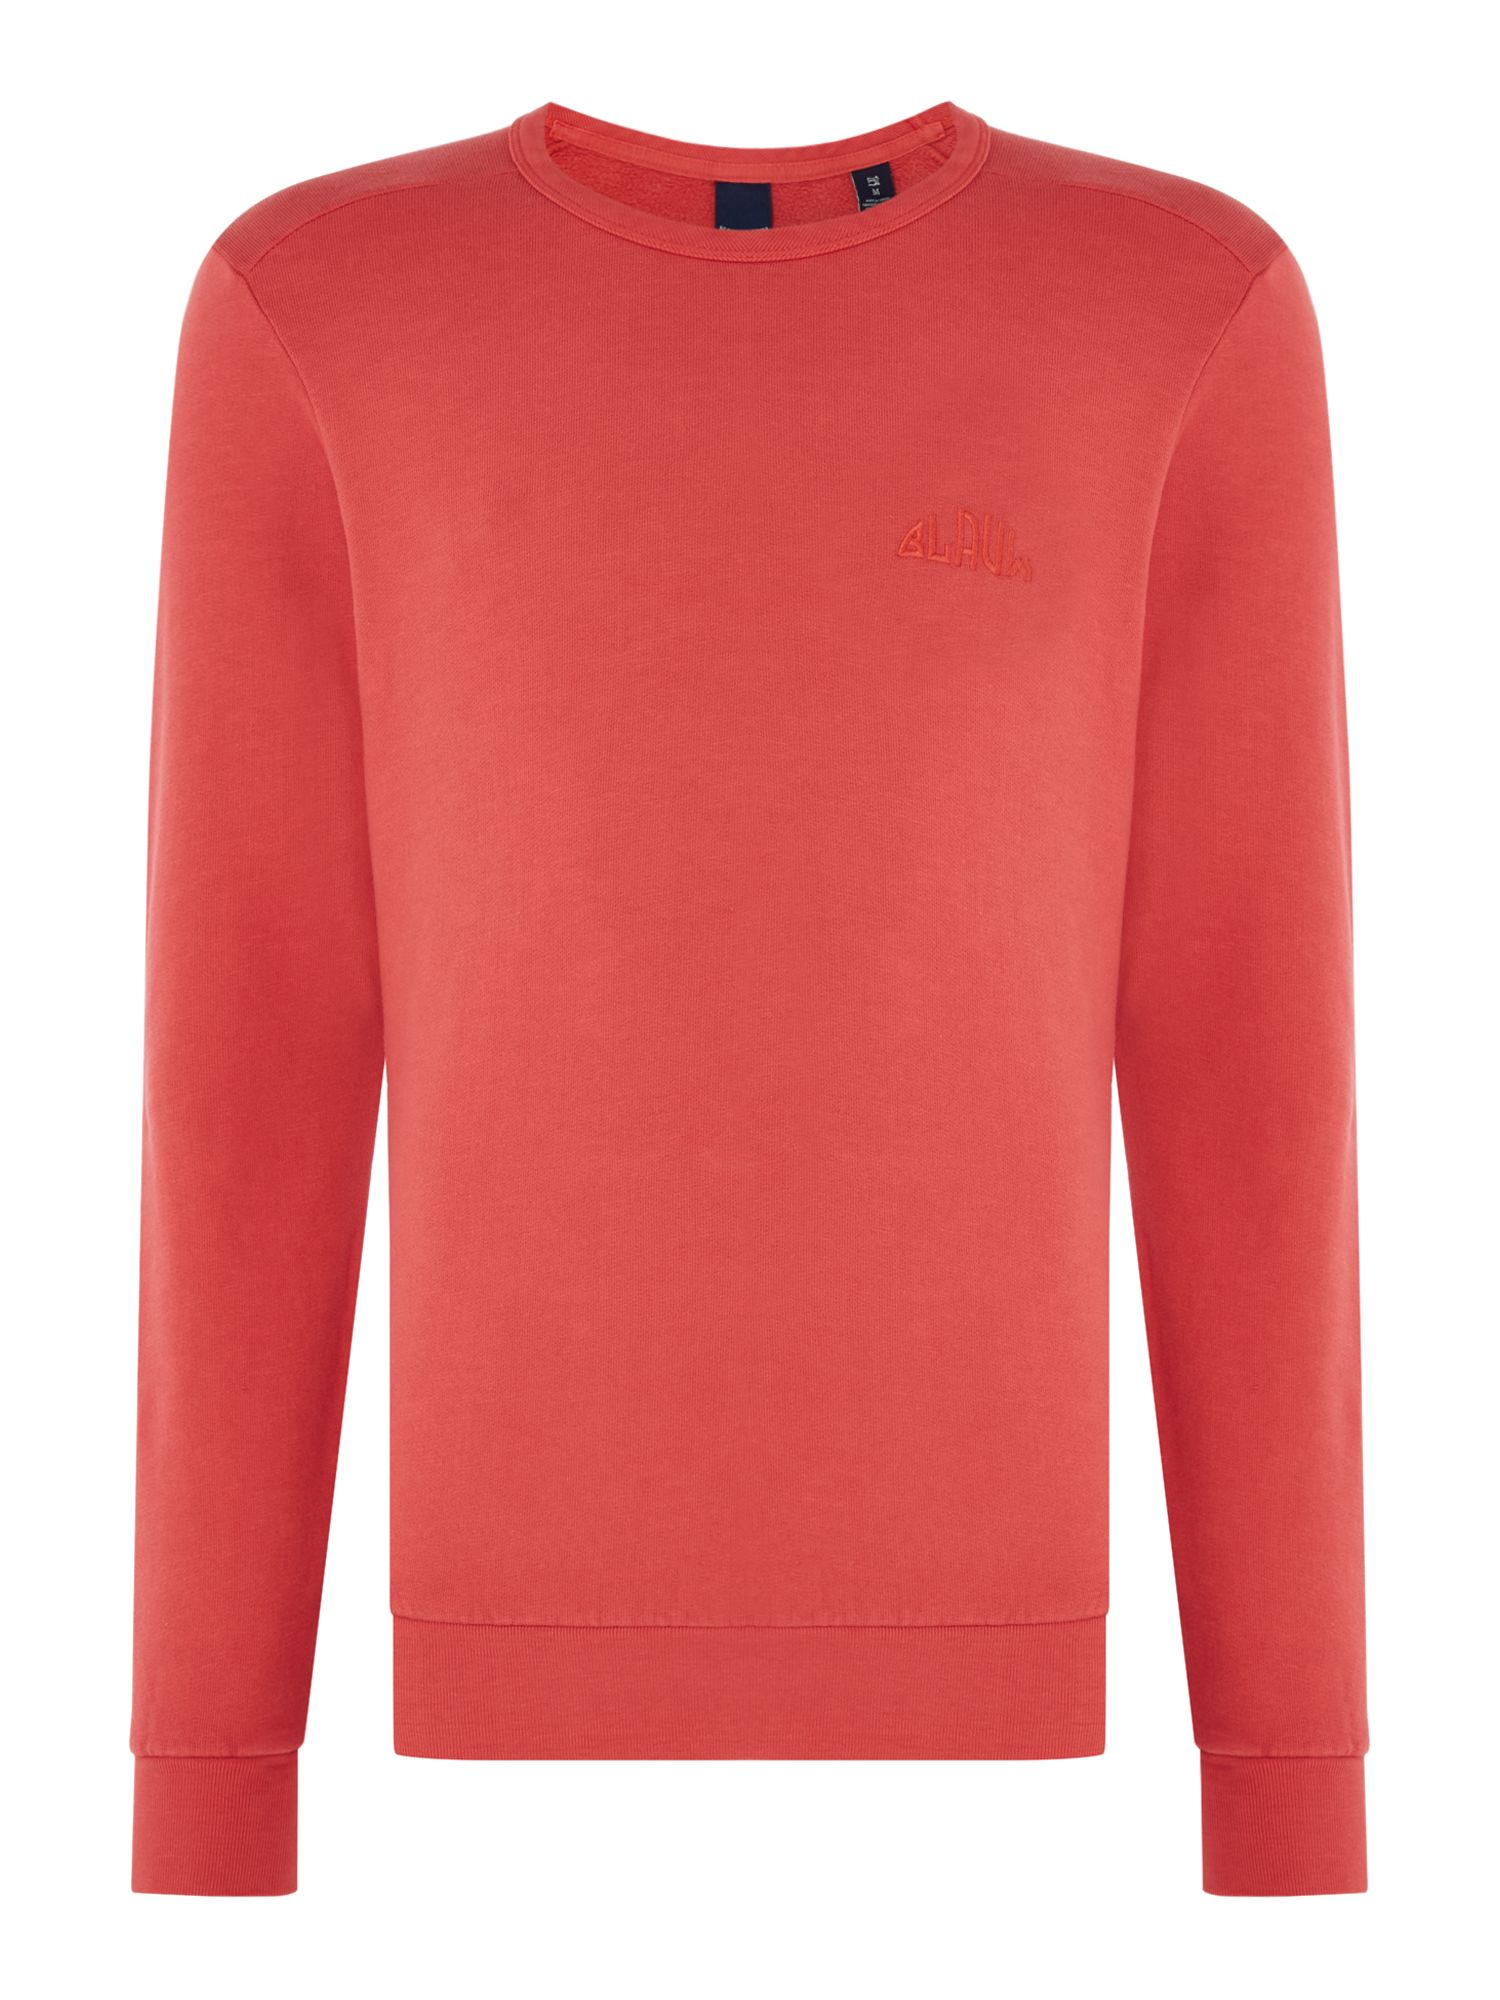 Men's Scotch & Soda Garment Dyed Sweatshirt, Red